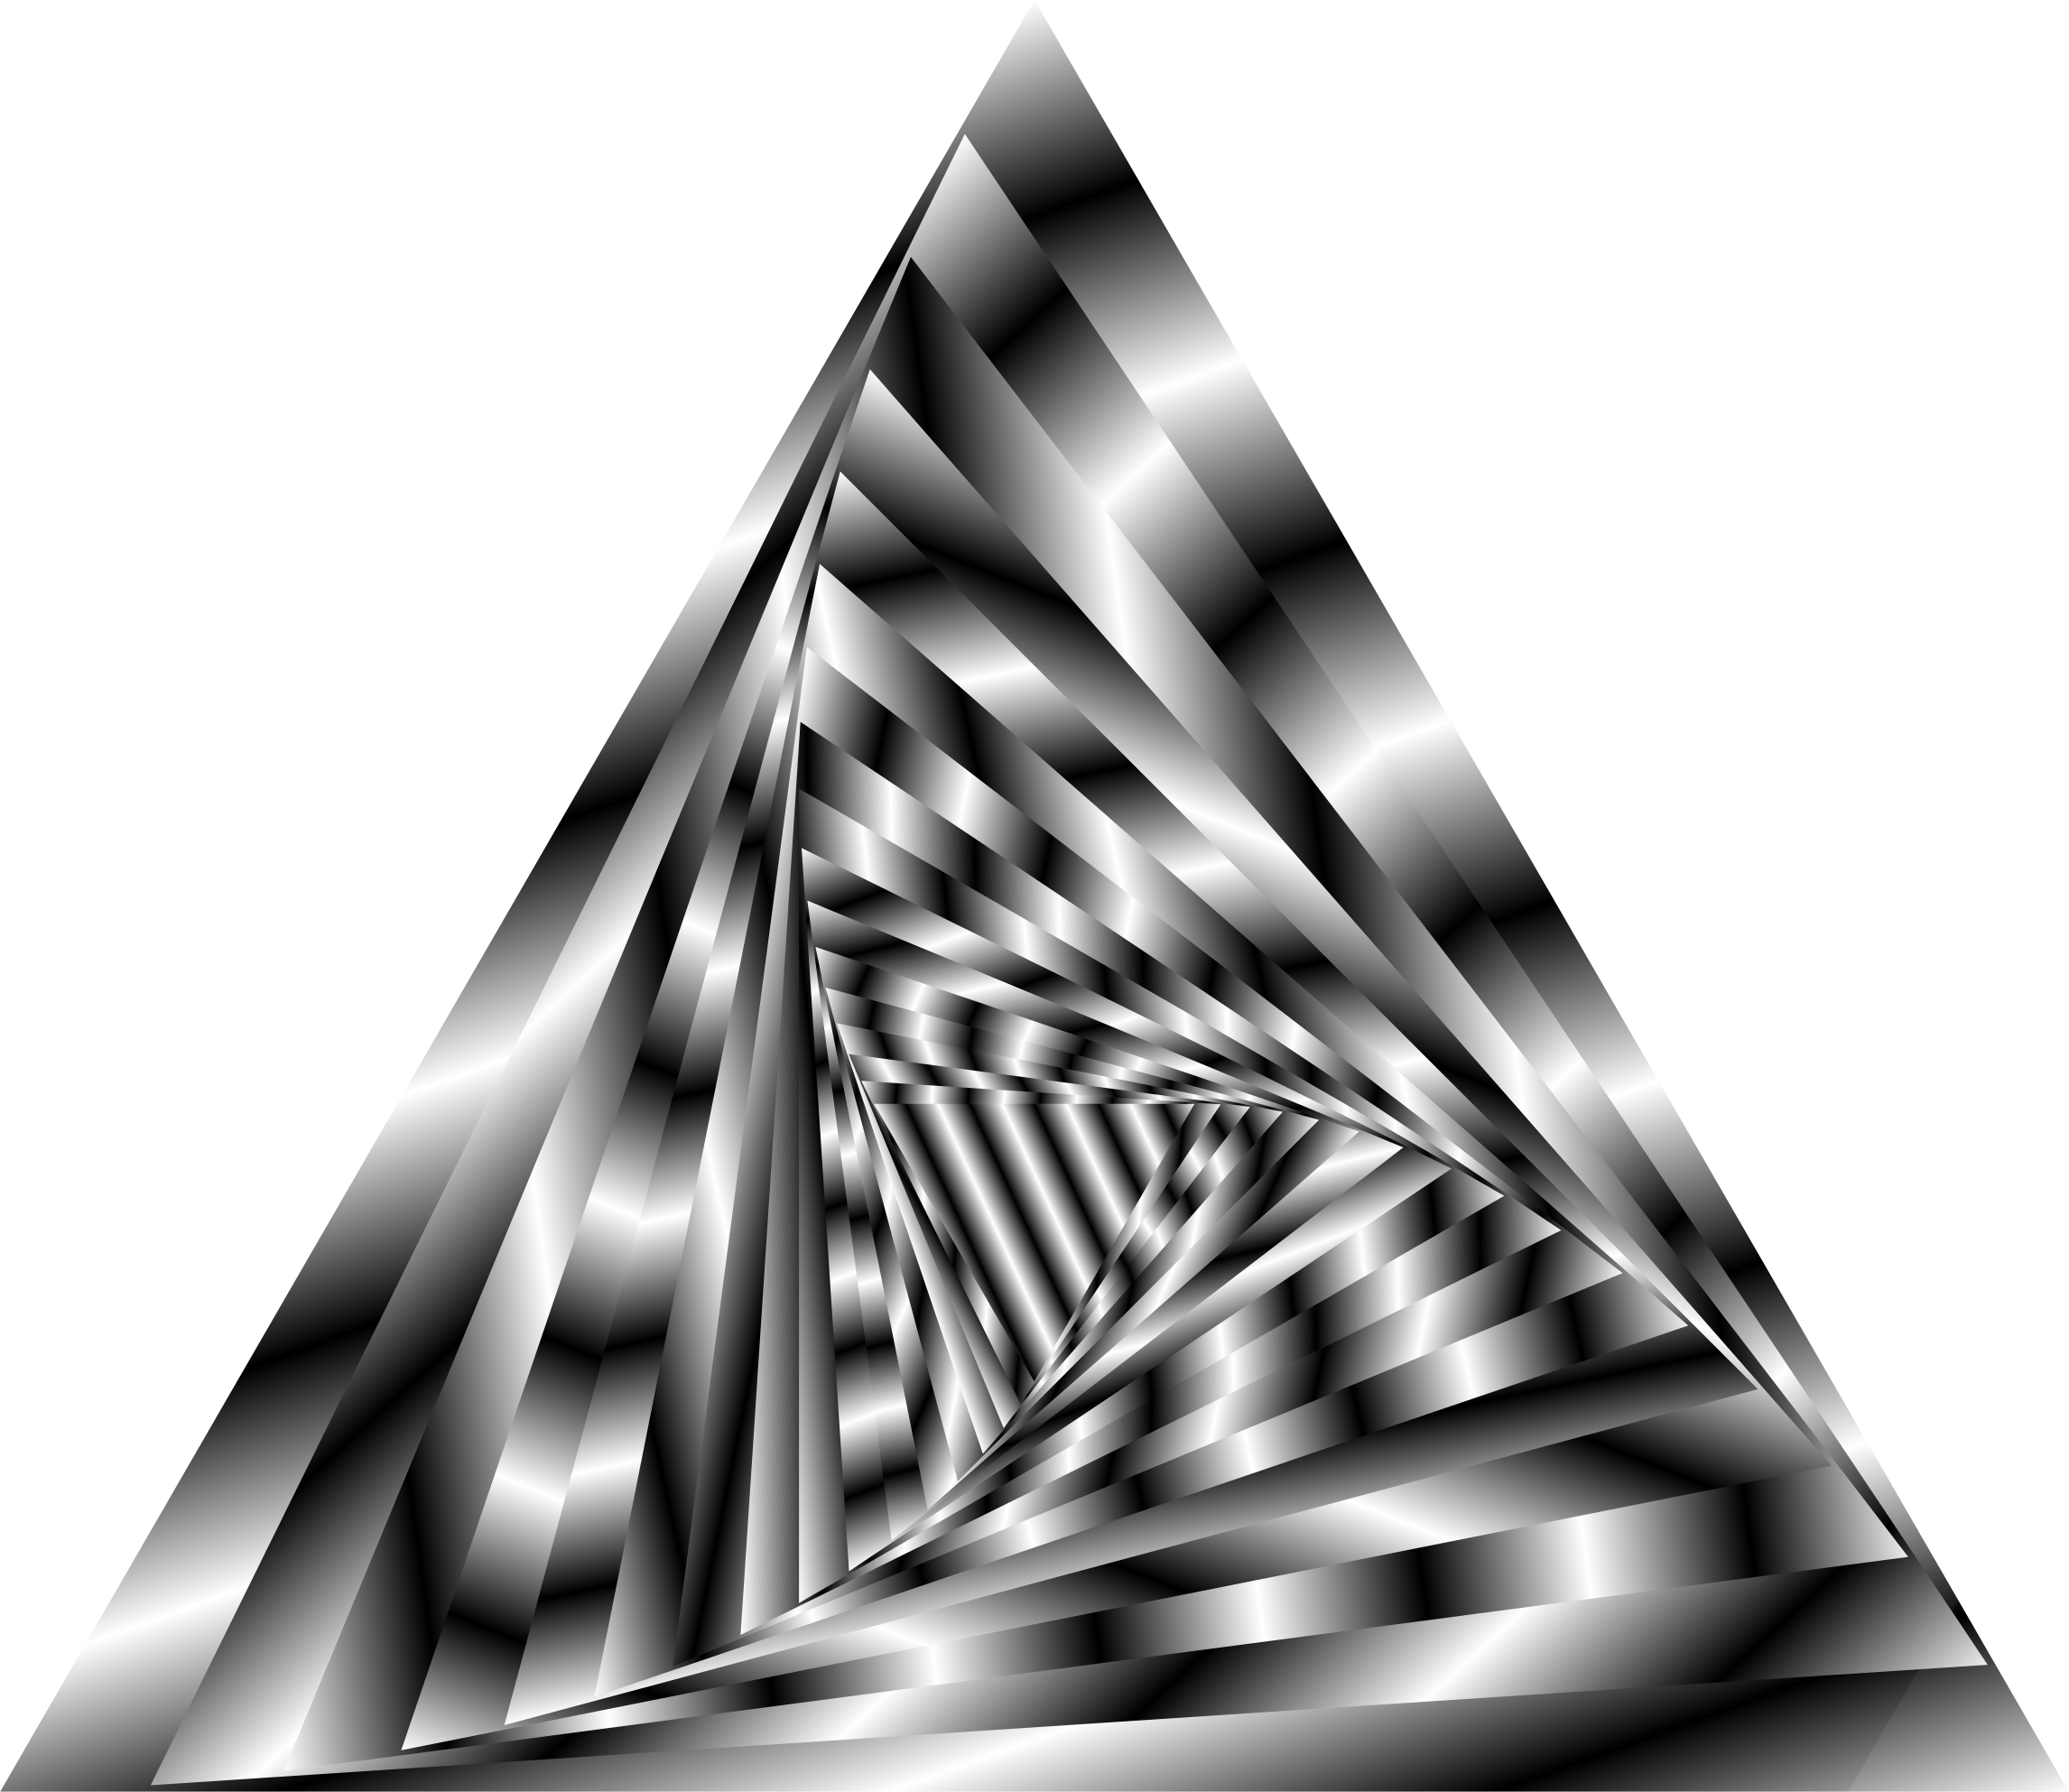 Triangle Vortex Hypnotic by GDJ